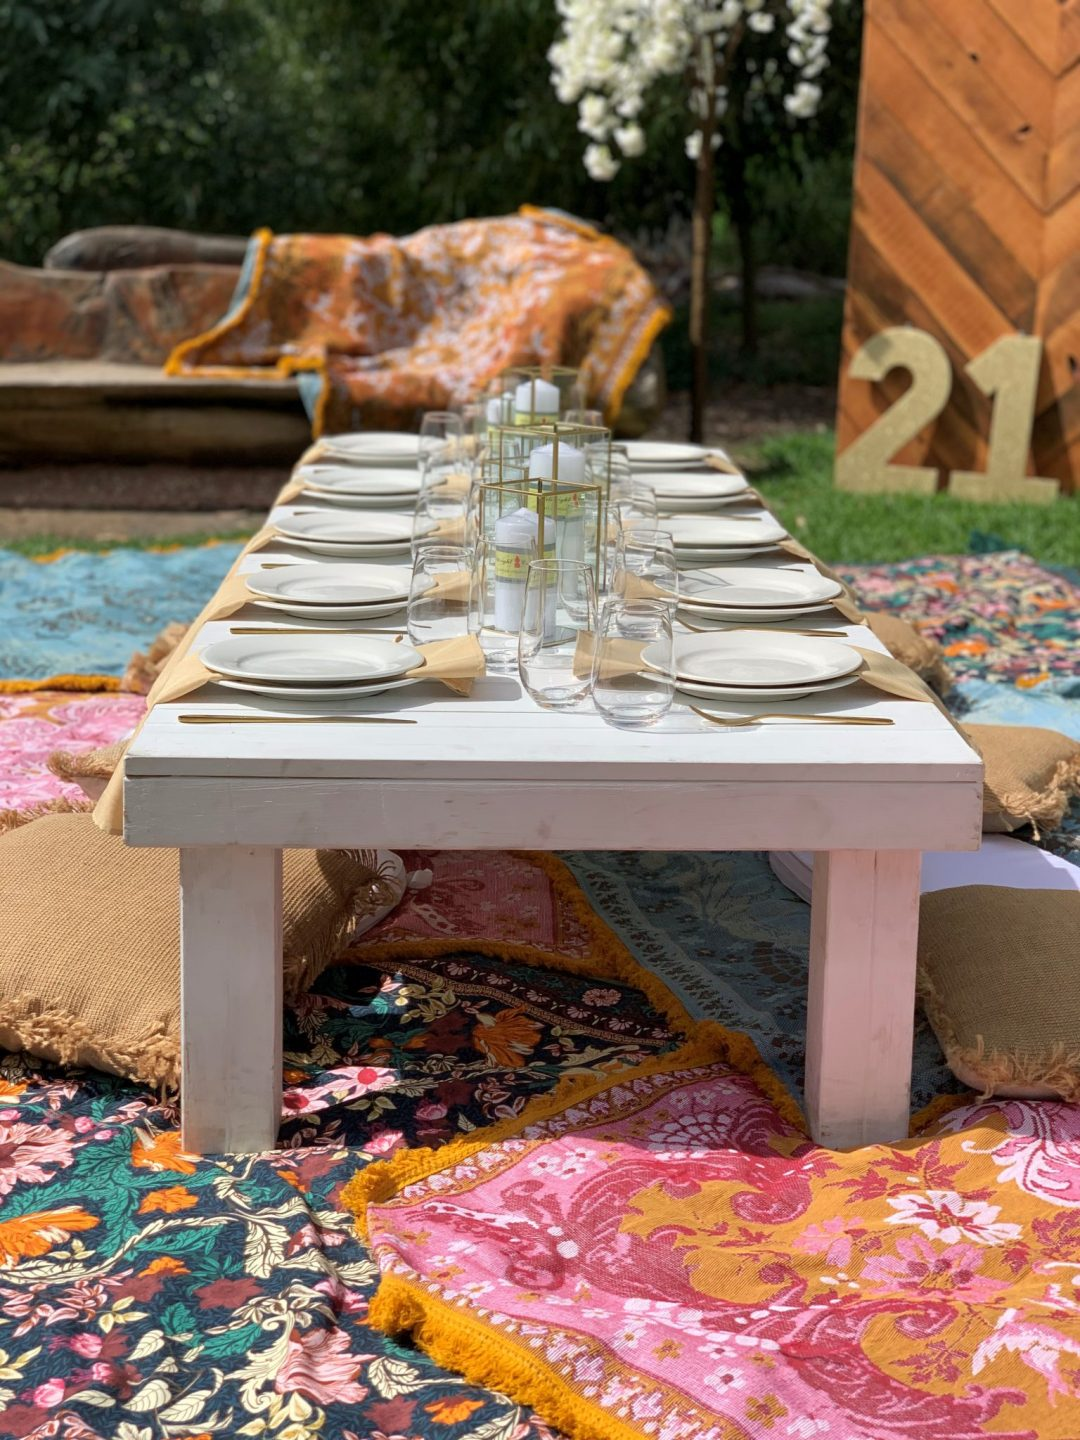 white-pallet-picnic-table-glass-candle-boxes-with-champagne-linen-napkins-AFC-crockery-and-standard-glassware-assorted-cushions-and-wandering-folk-rugs